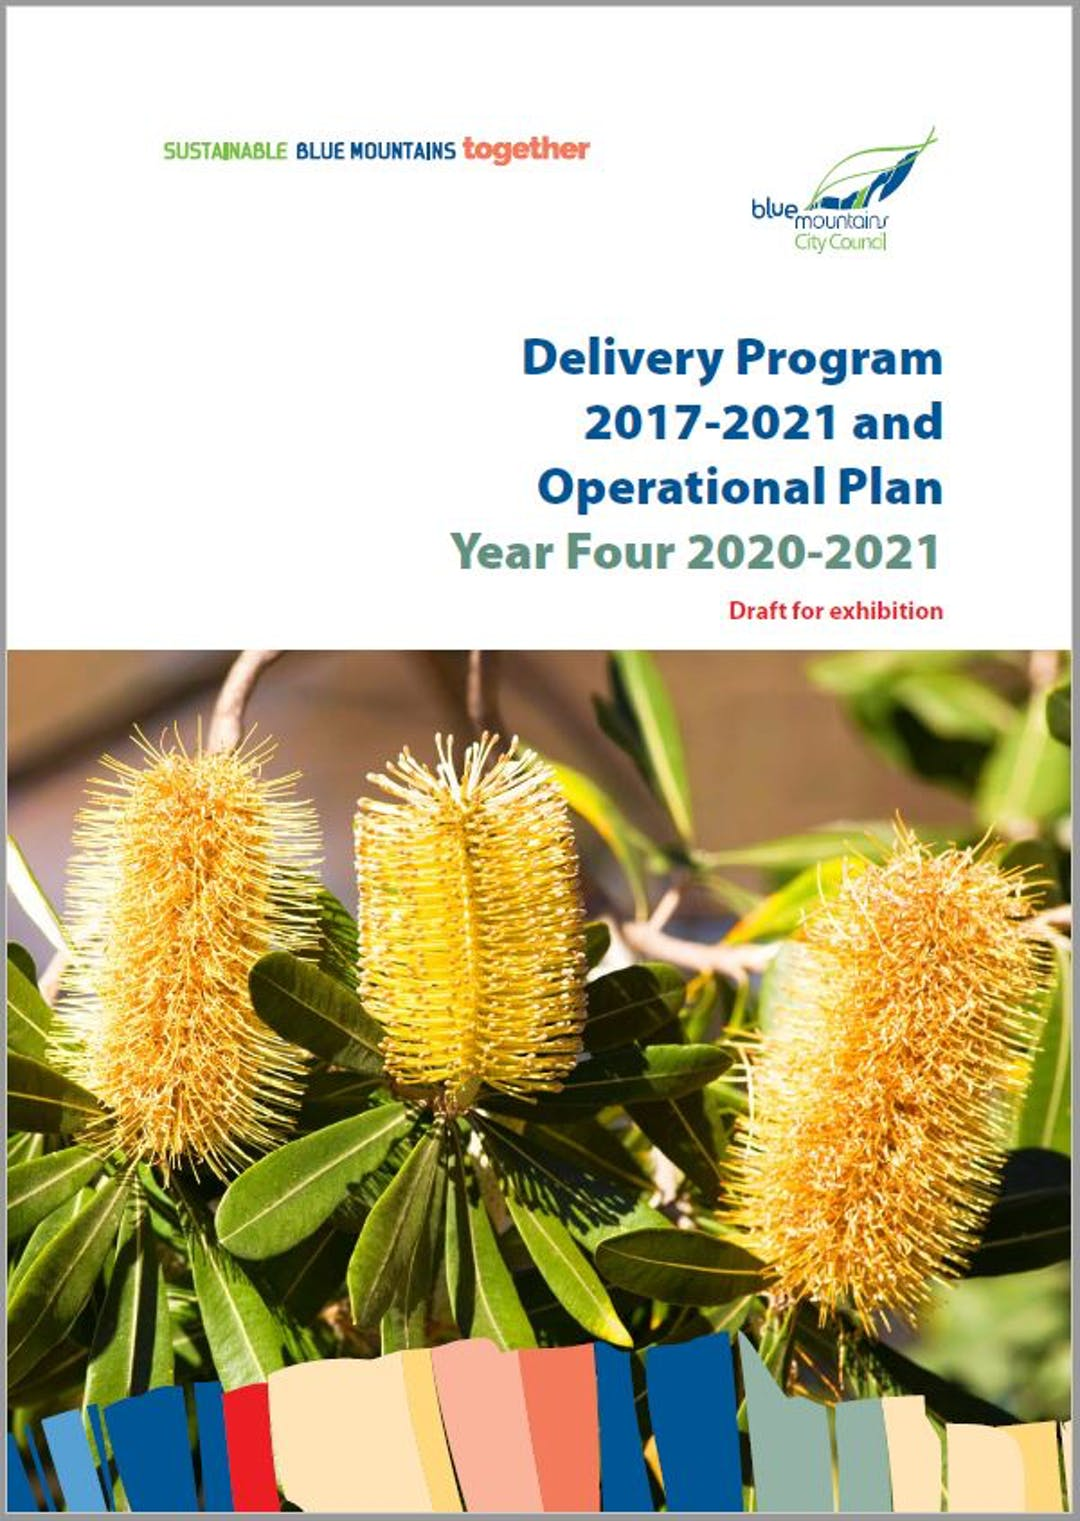 Cover image for Draft Delivery Program 2017-2021 and Operational Plan 2020-2021